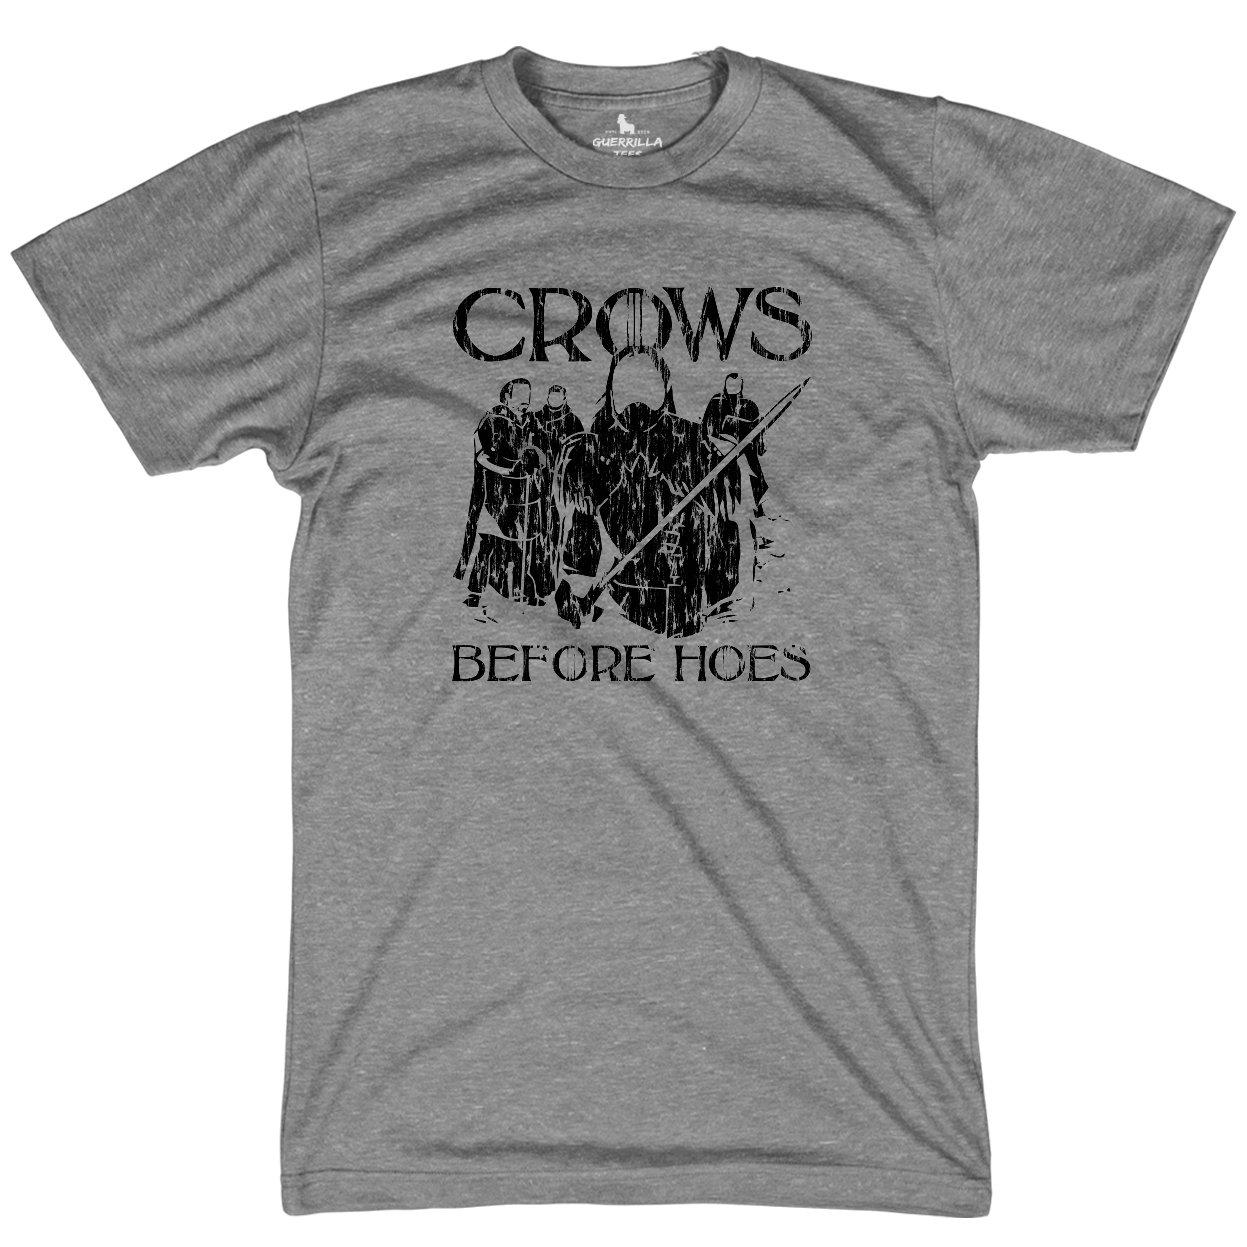 46cb2439d0 Crows Before Hoes T-Shirt | HBO Funny Game of Thrones Shirt